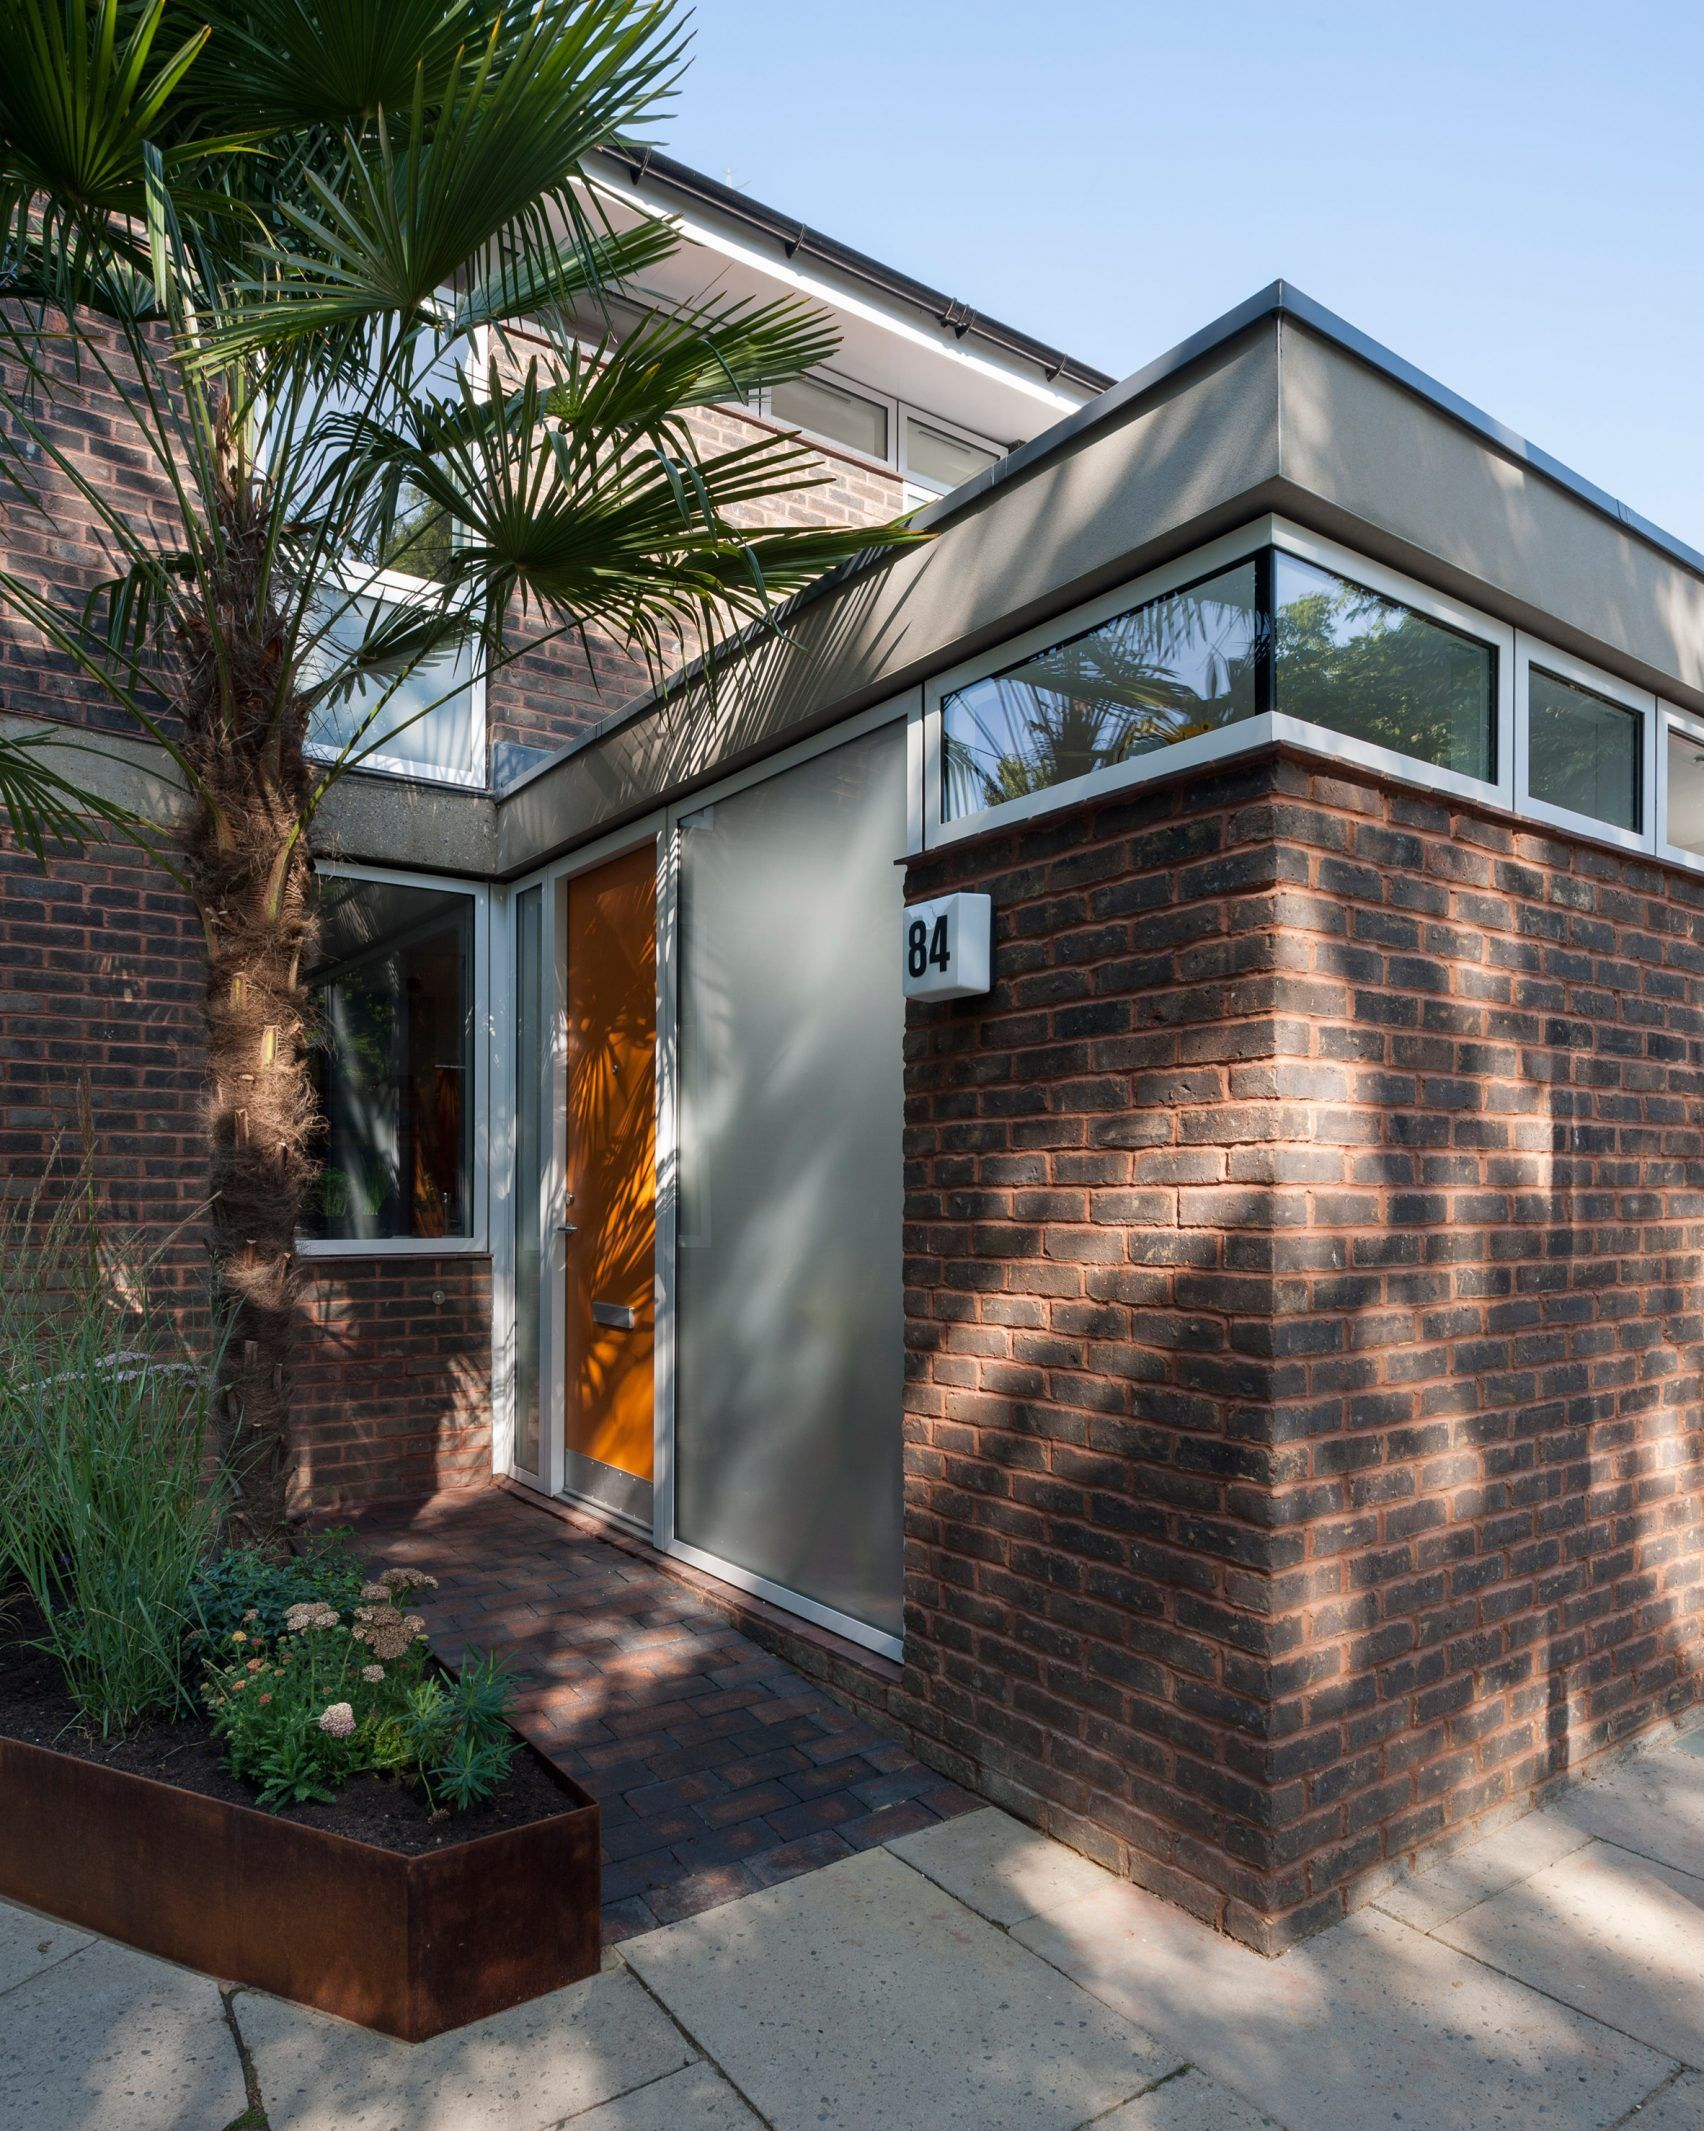 Marvelous 1960S House Renovation Design Ideas With Open Concept To Try22